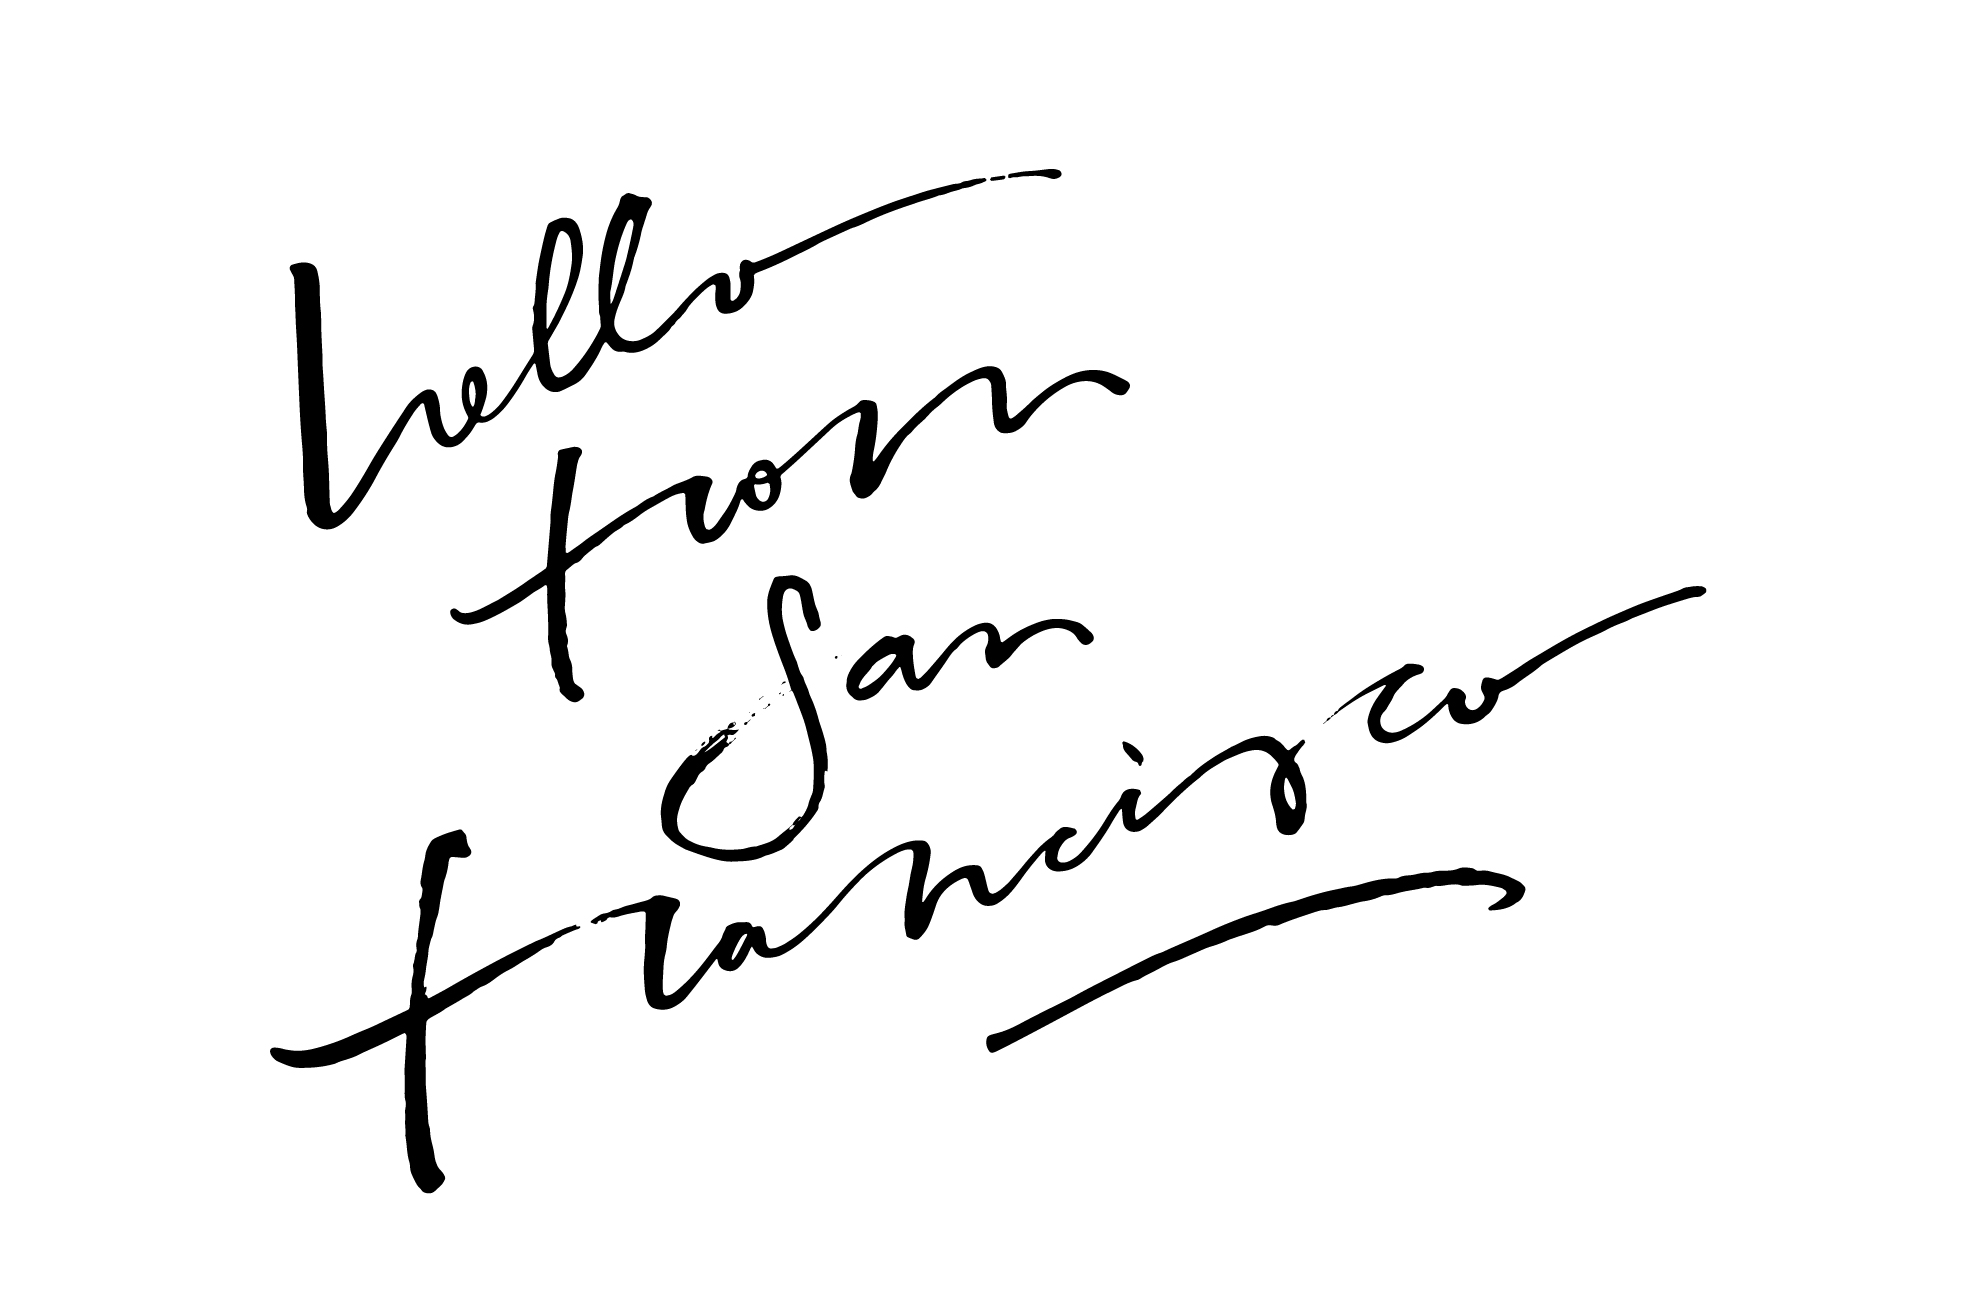 hello-from-san-francisco-lettering-calligraphy-design-x-five